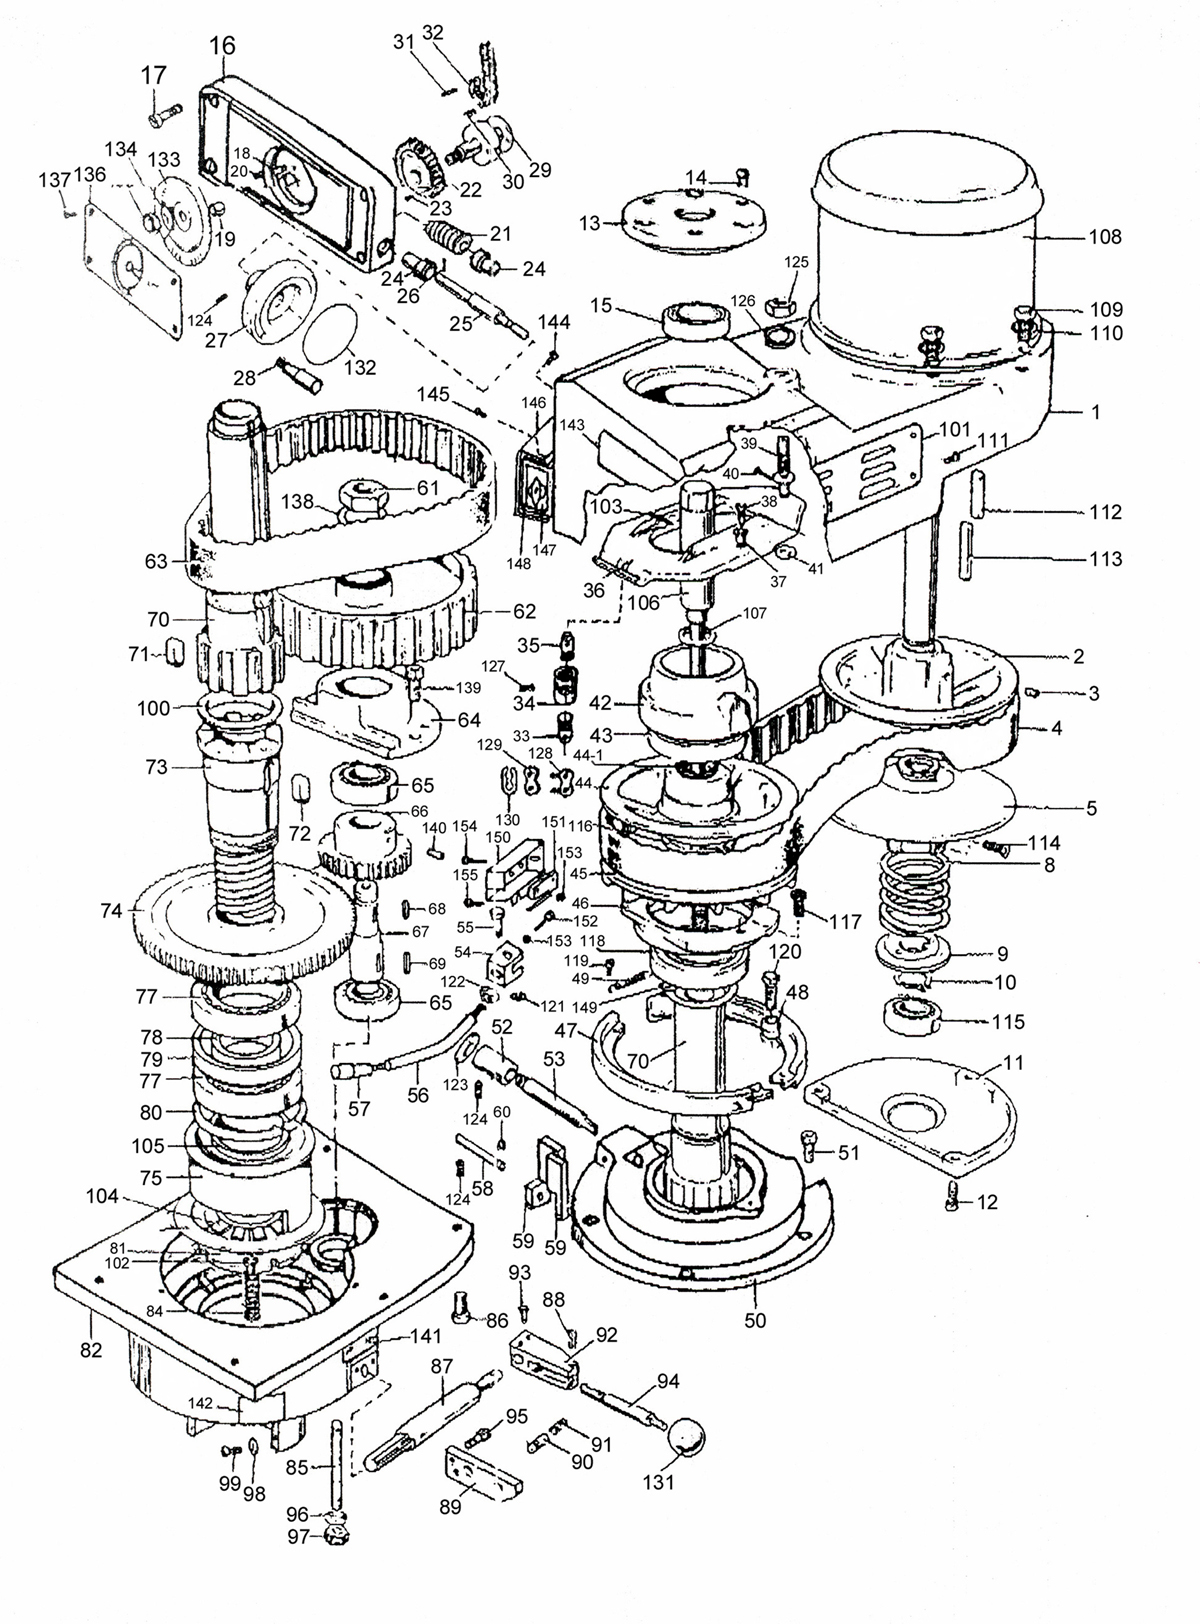 bosch fog light wiring diagram